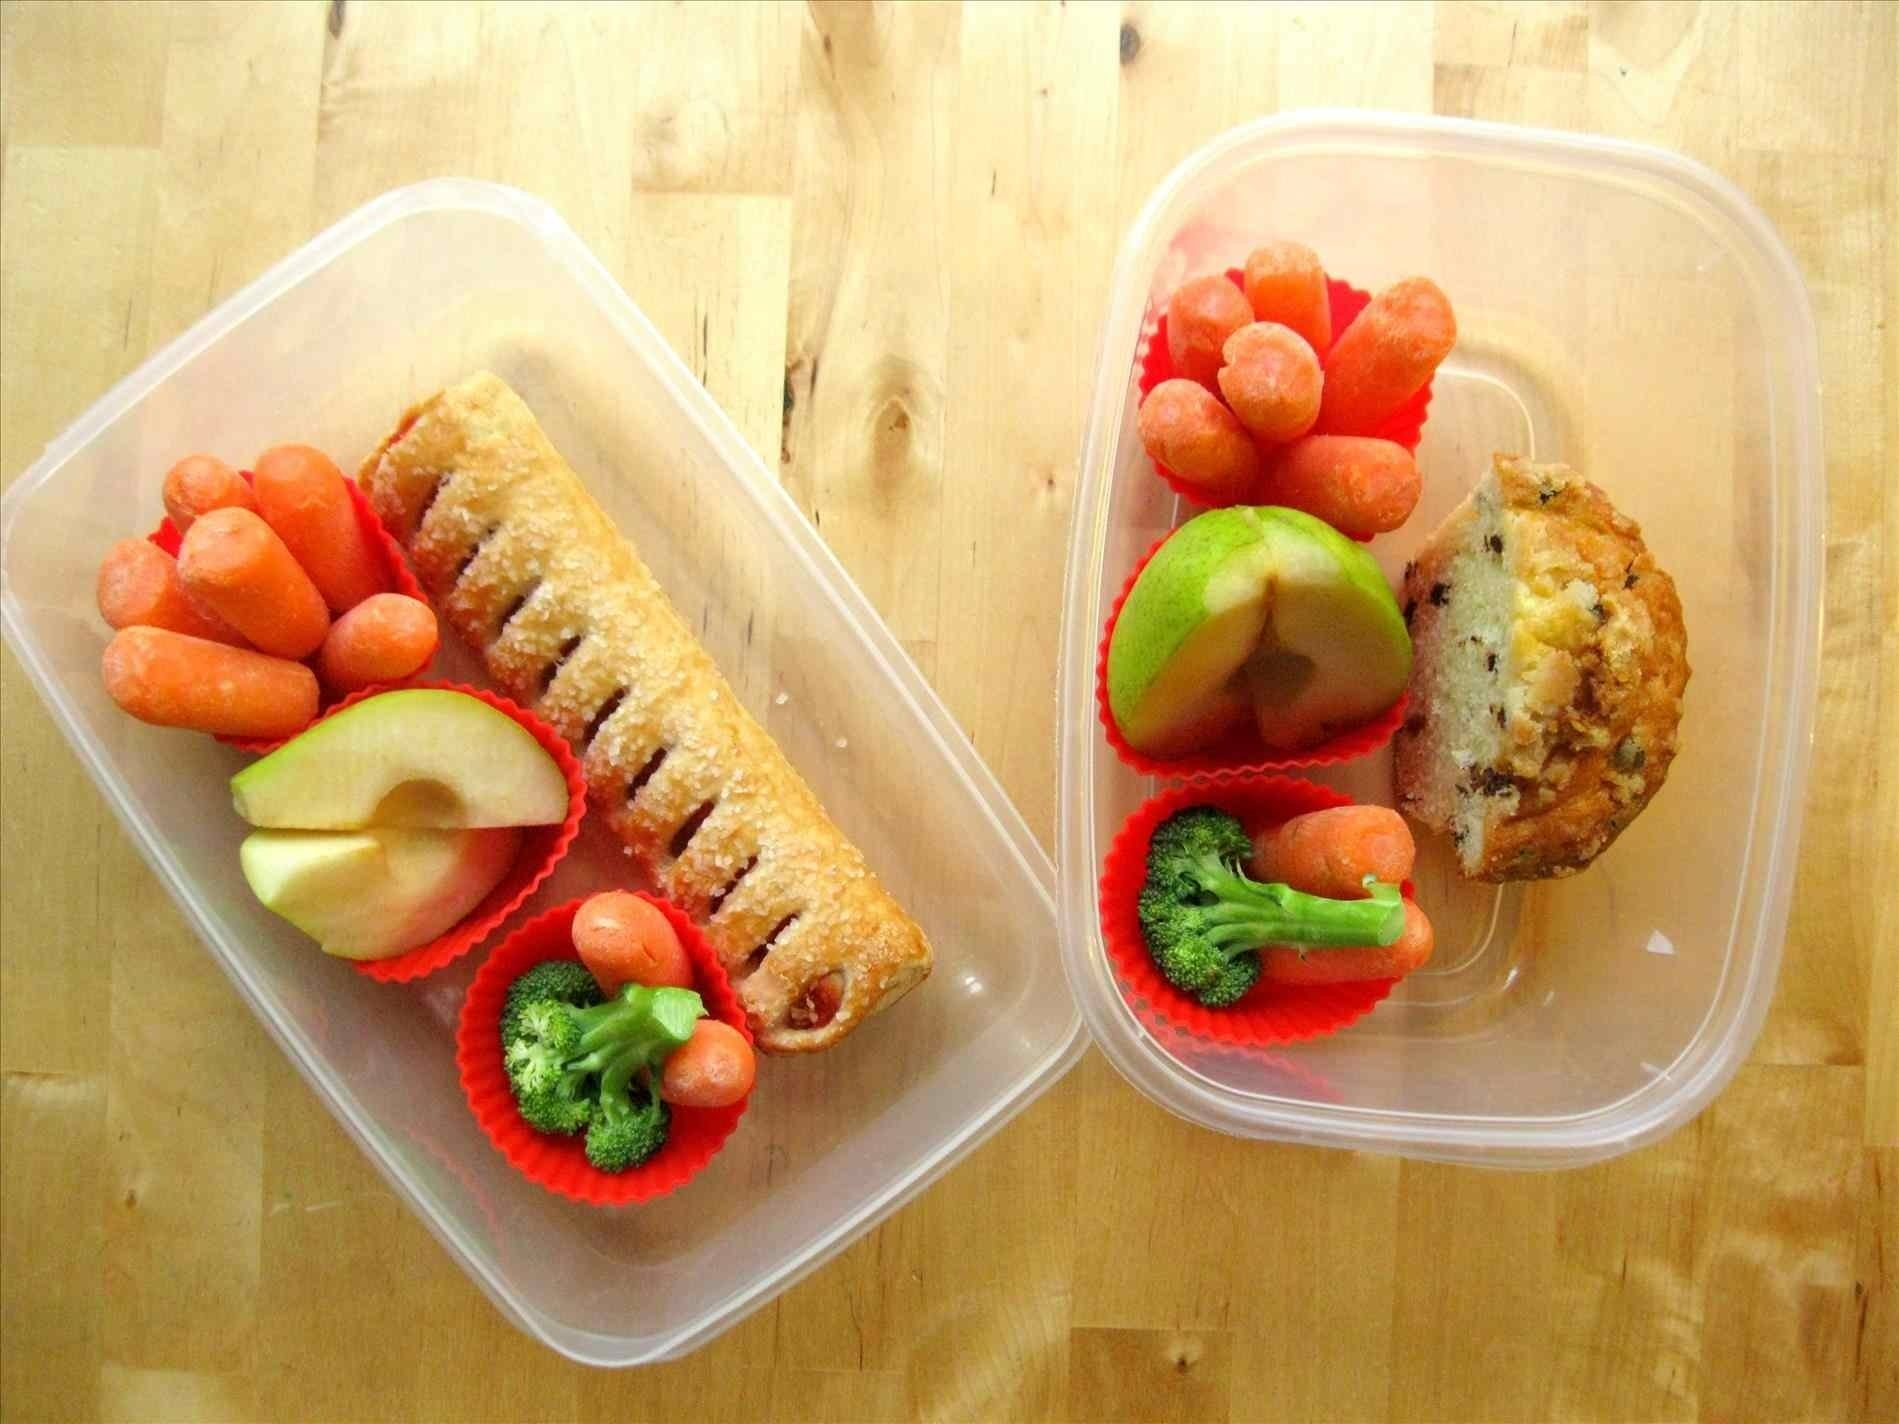 10 Famous Healthy Snack Ideas For Toddlers s healthy snack recipes for kids toddler friendly idea 2020